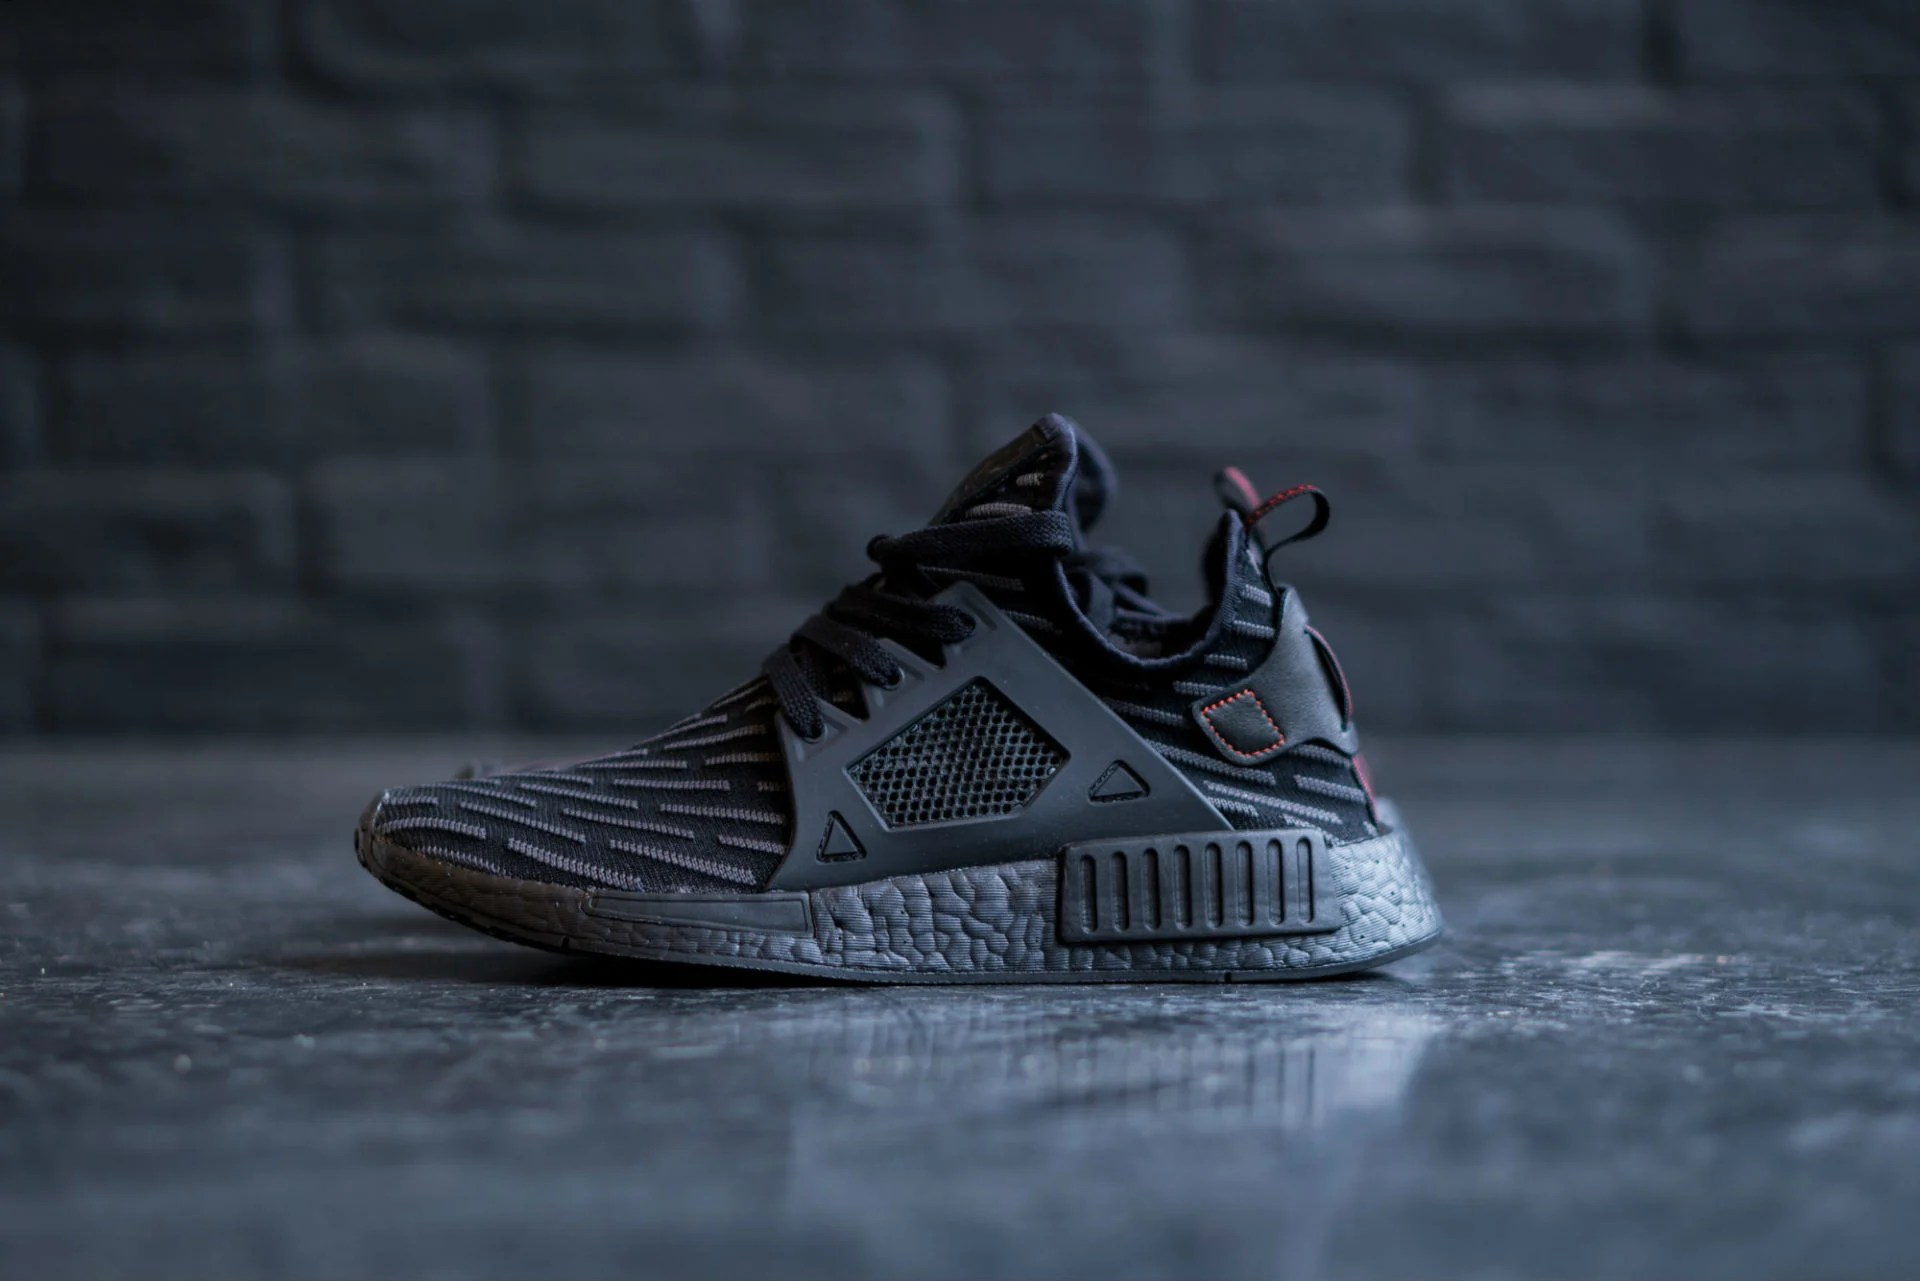 Adidas Nmd Rt Primeknit Nucleo Nero / Nucleo Rosso Gocce D'oltremare Belle Scarpe